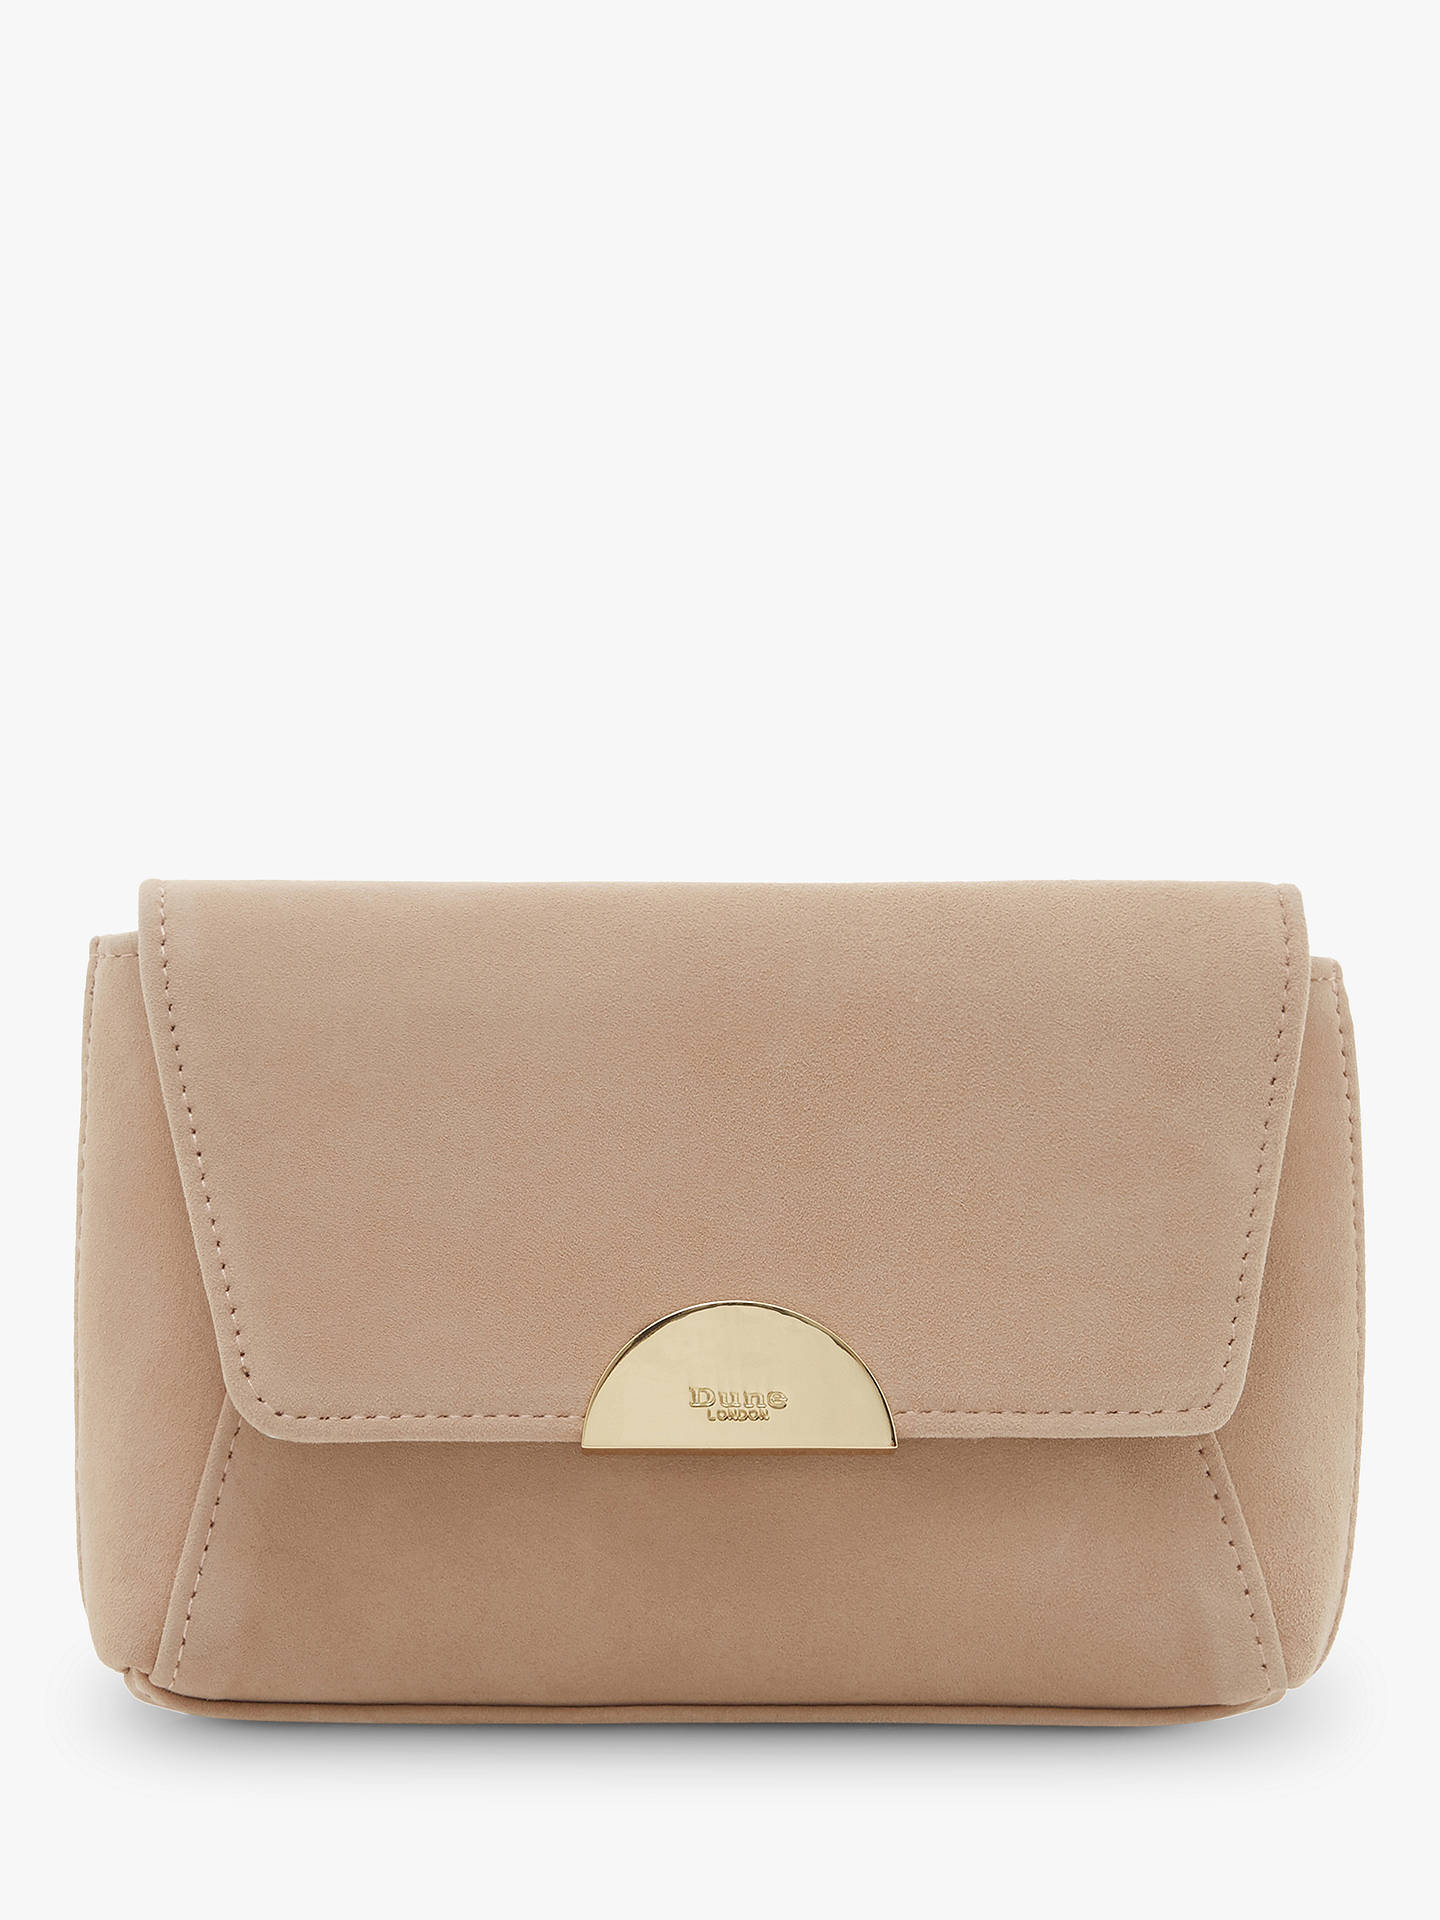 Buy Dune Billiee Suede Clutch Bag, Cappuccino Online at johnlewis.com